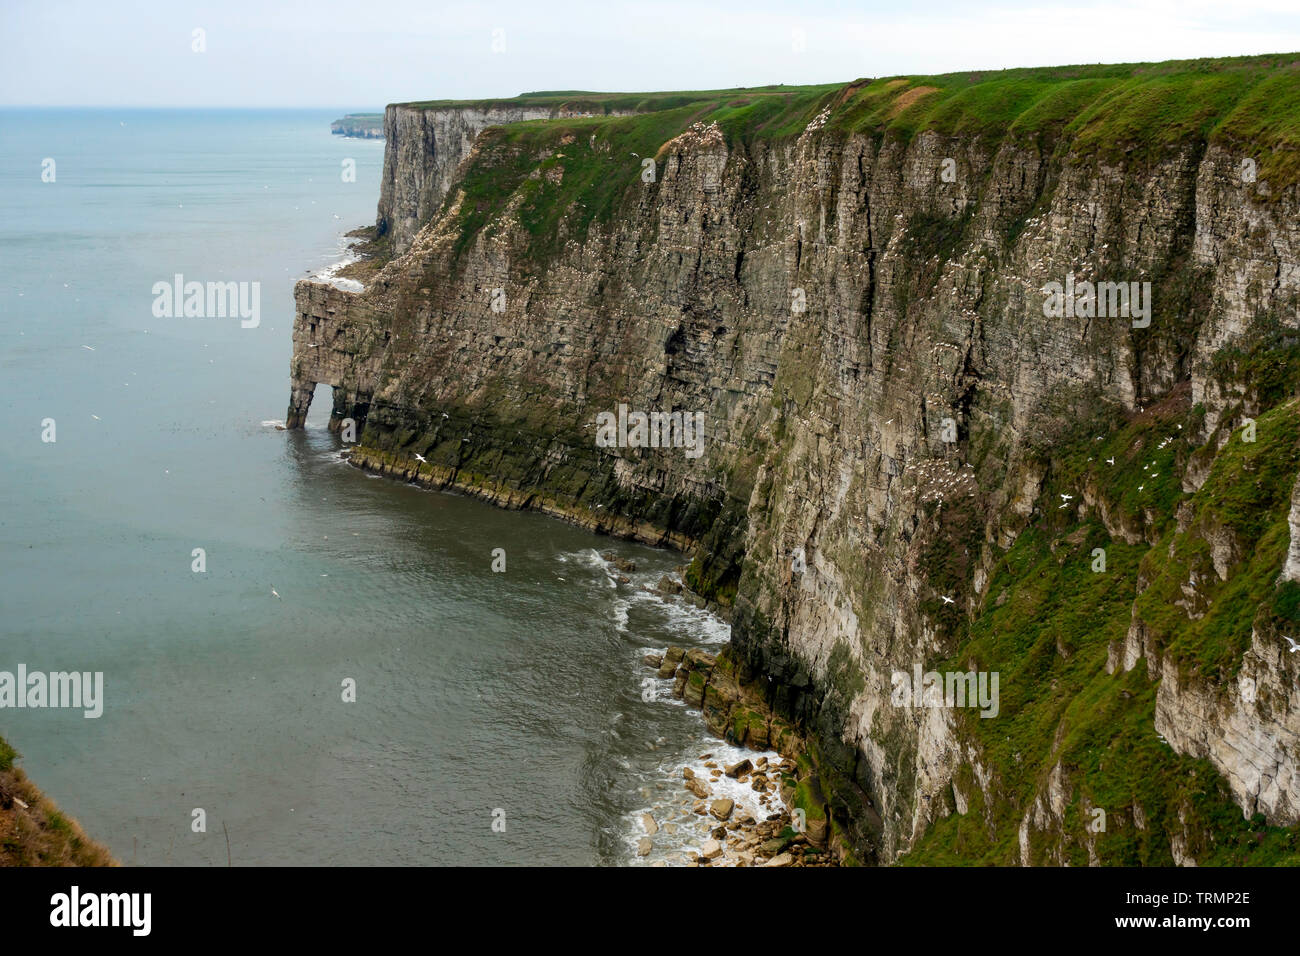 The view from the RSPB Bempton Cliffs Nature Reserve  from the Bartlett Nab viewpoint - Stock Image